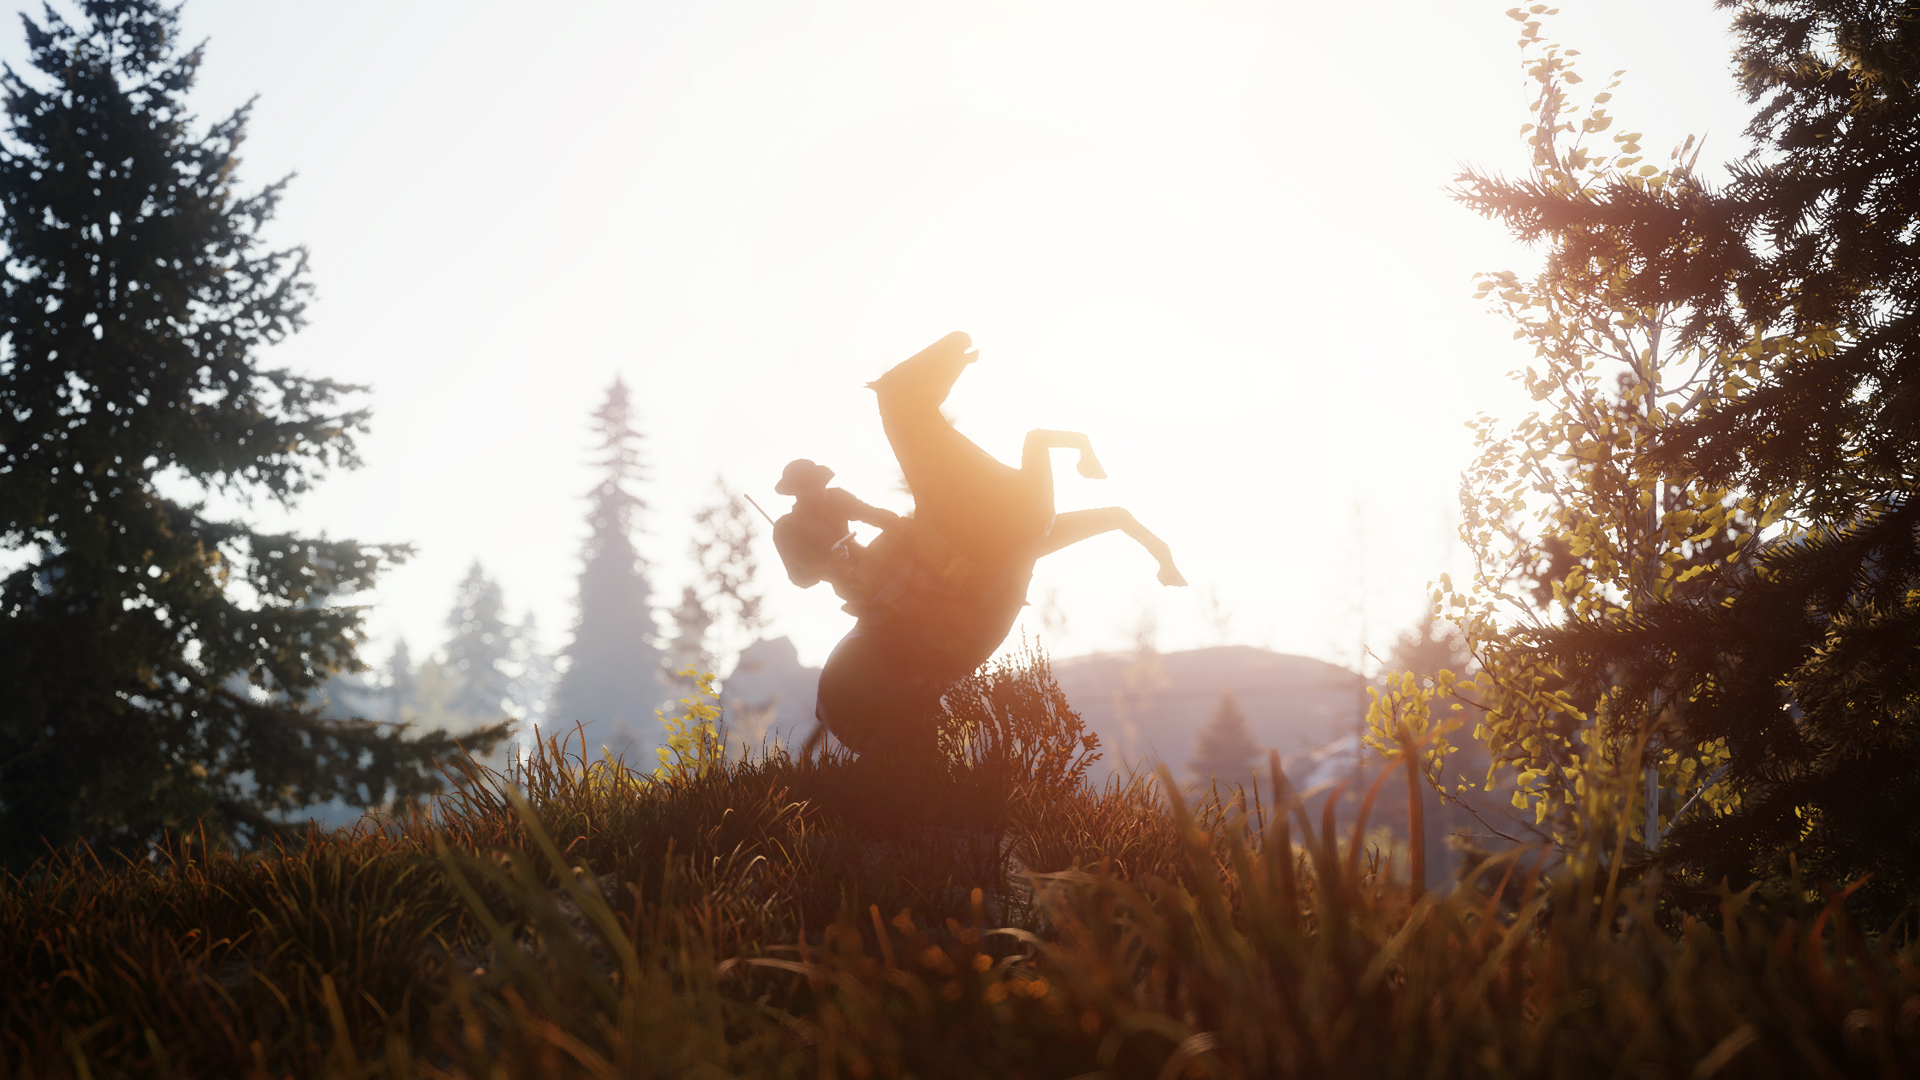 Rust update for June 6, 2019 · Giddy Up! · Steam Database